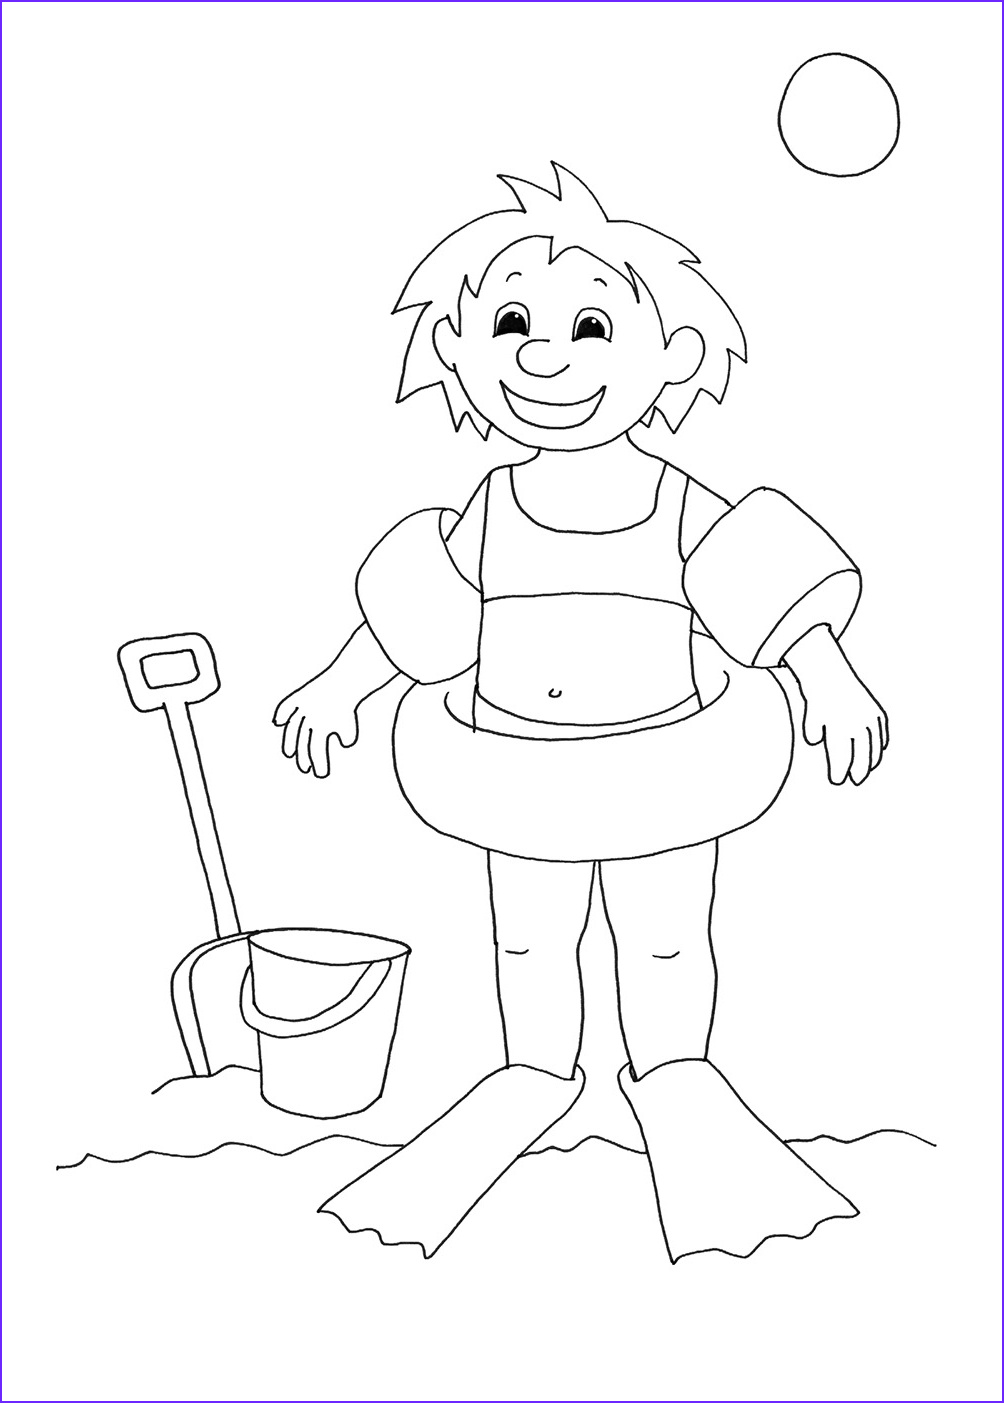 Swim Coloring Pages New Gallery Summer Coloring Pages for Kids Print them All for Free